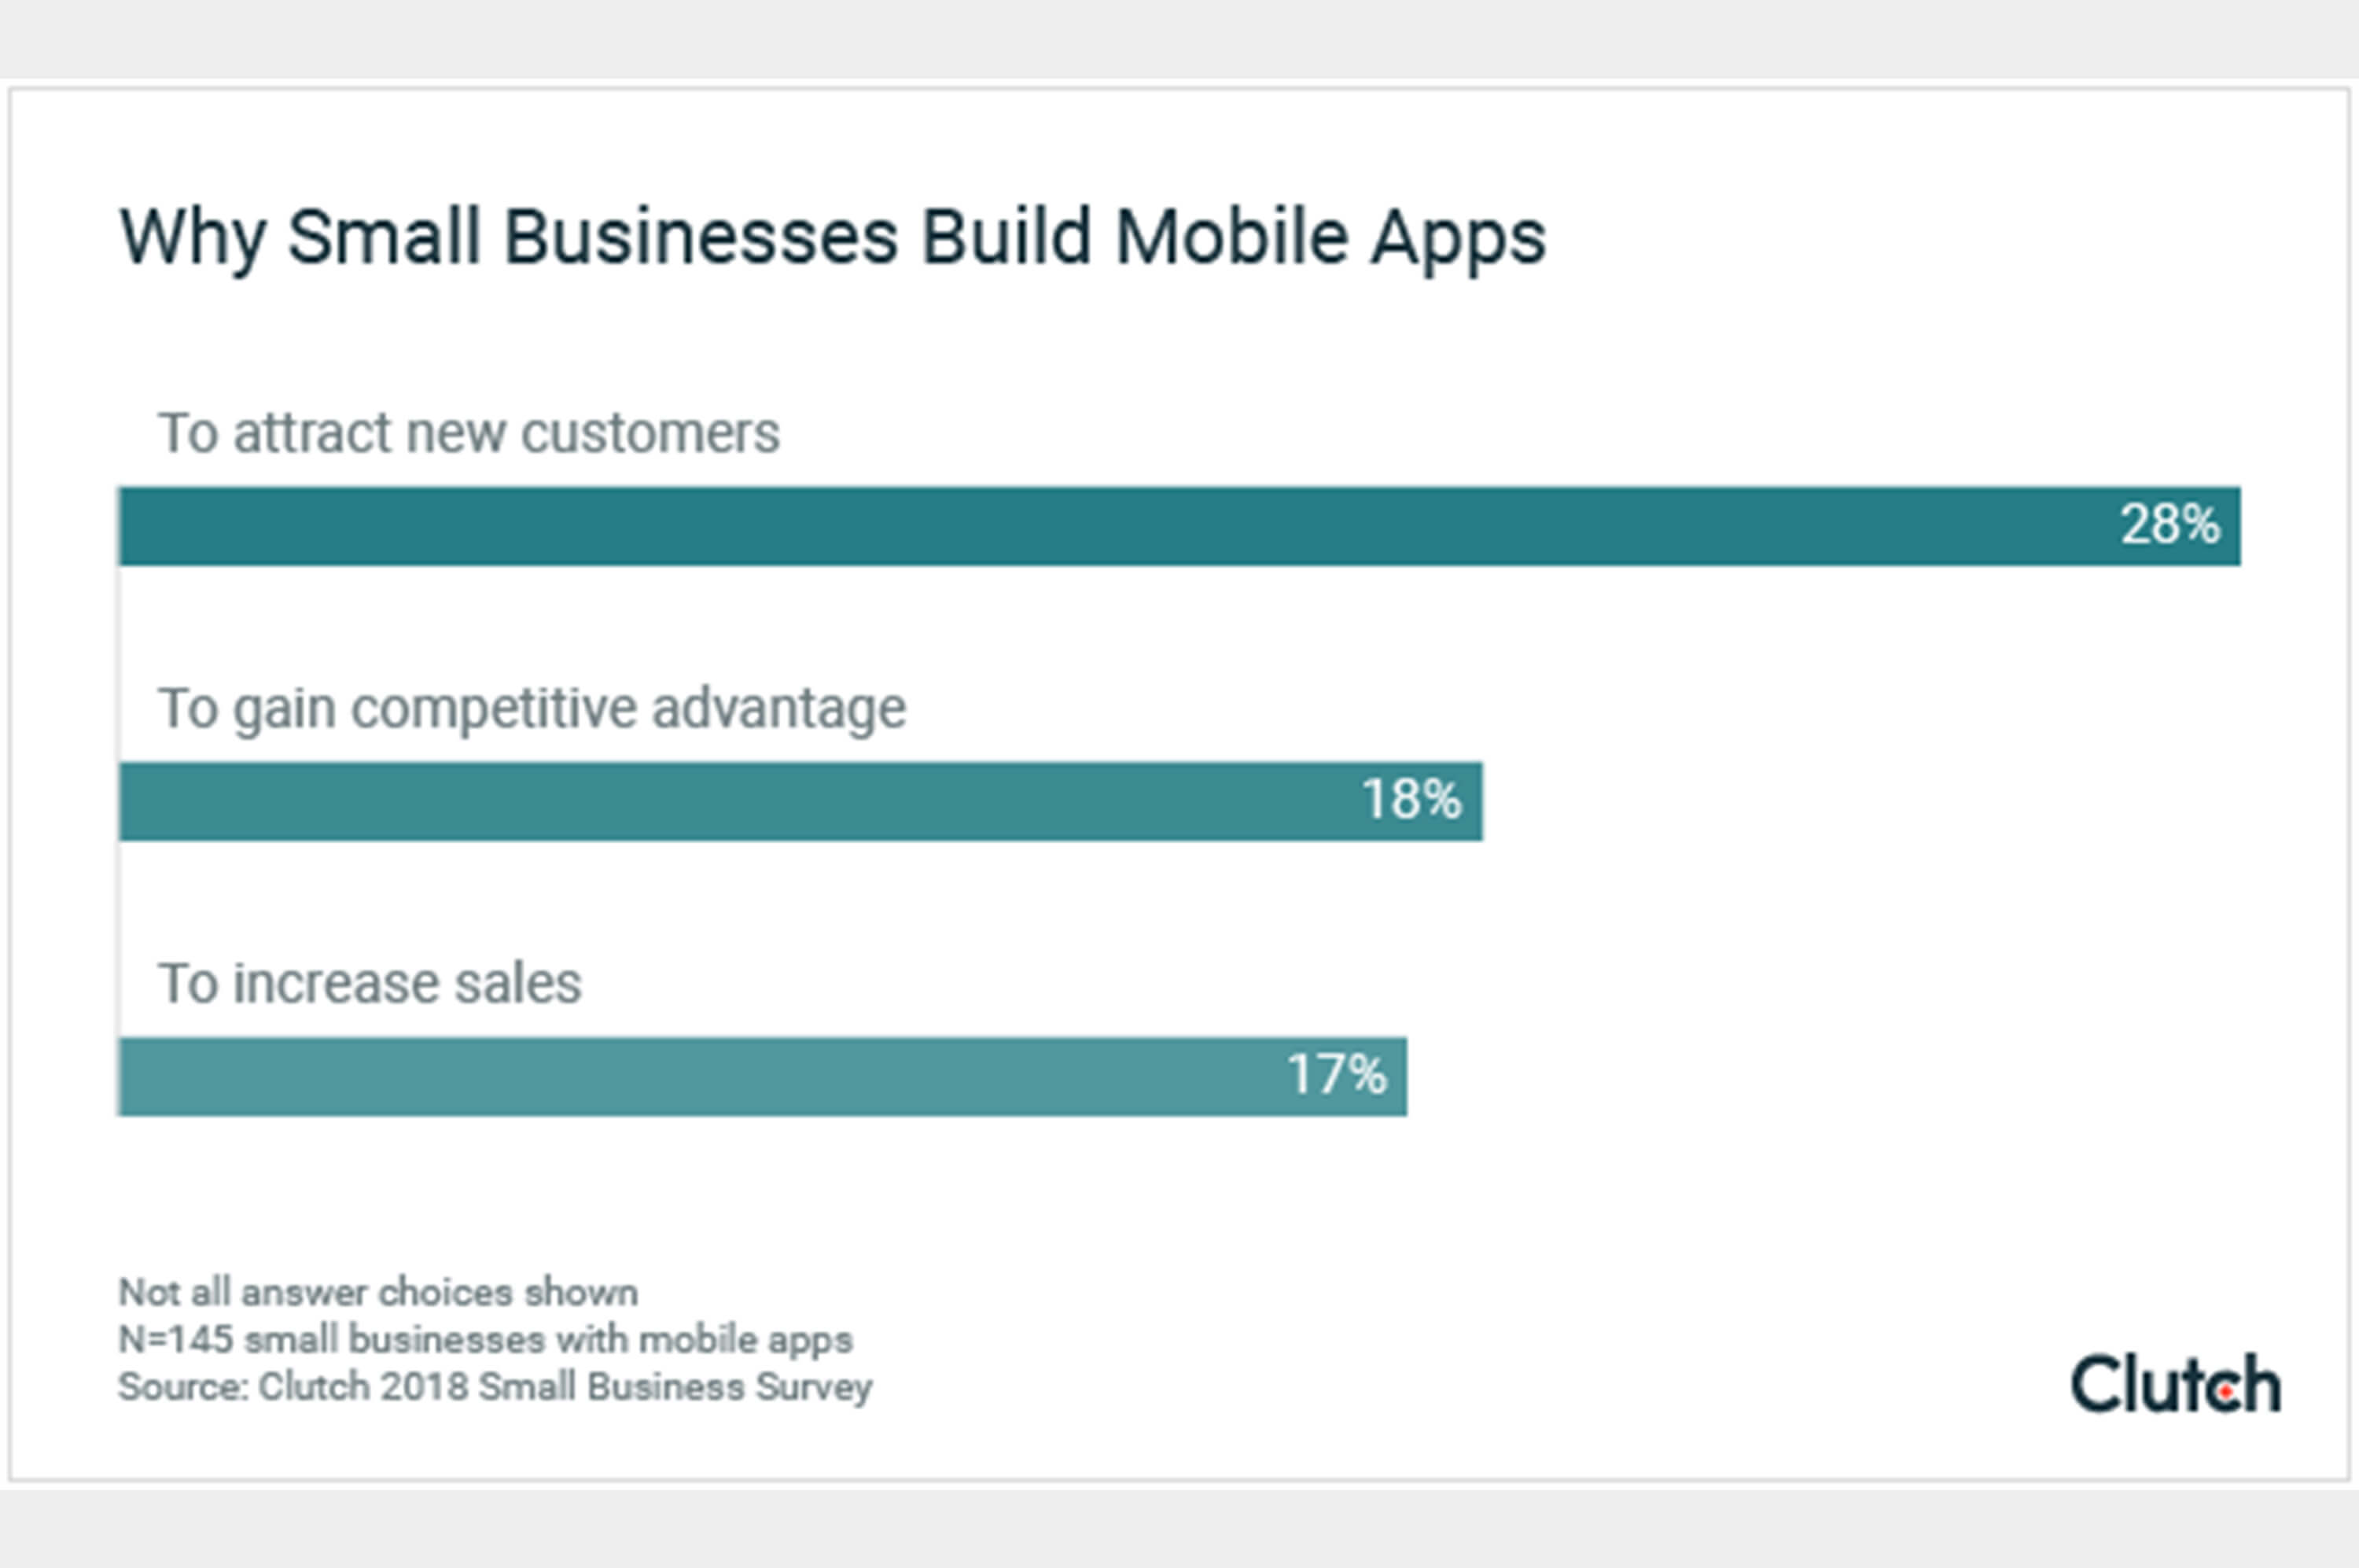 a statistic about why small business build mobile apps